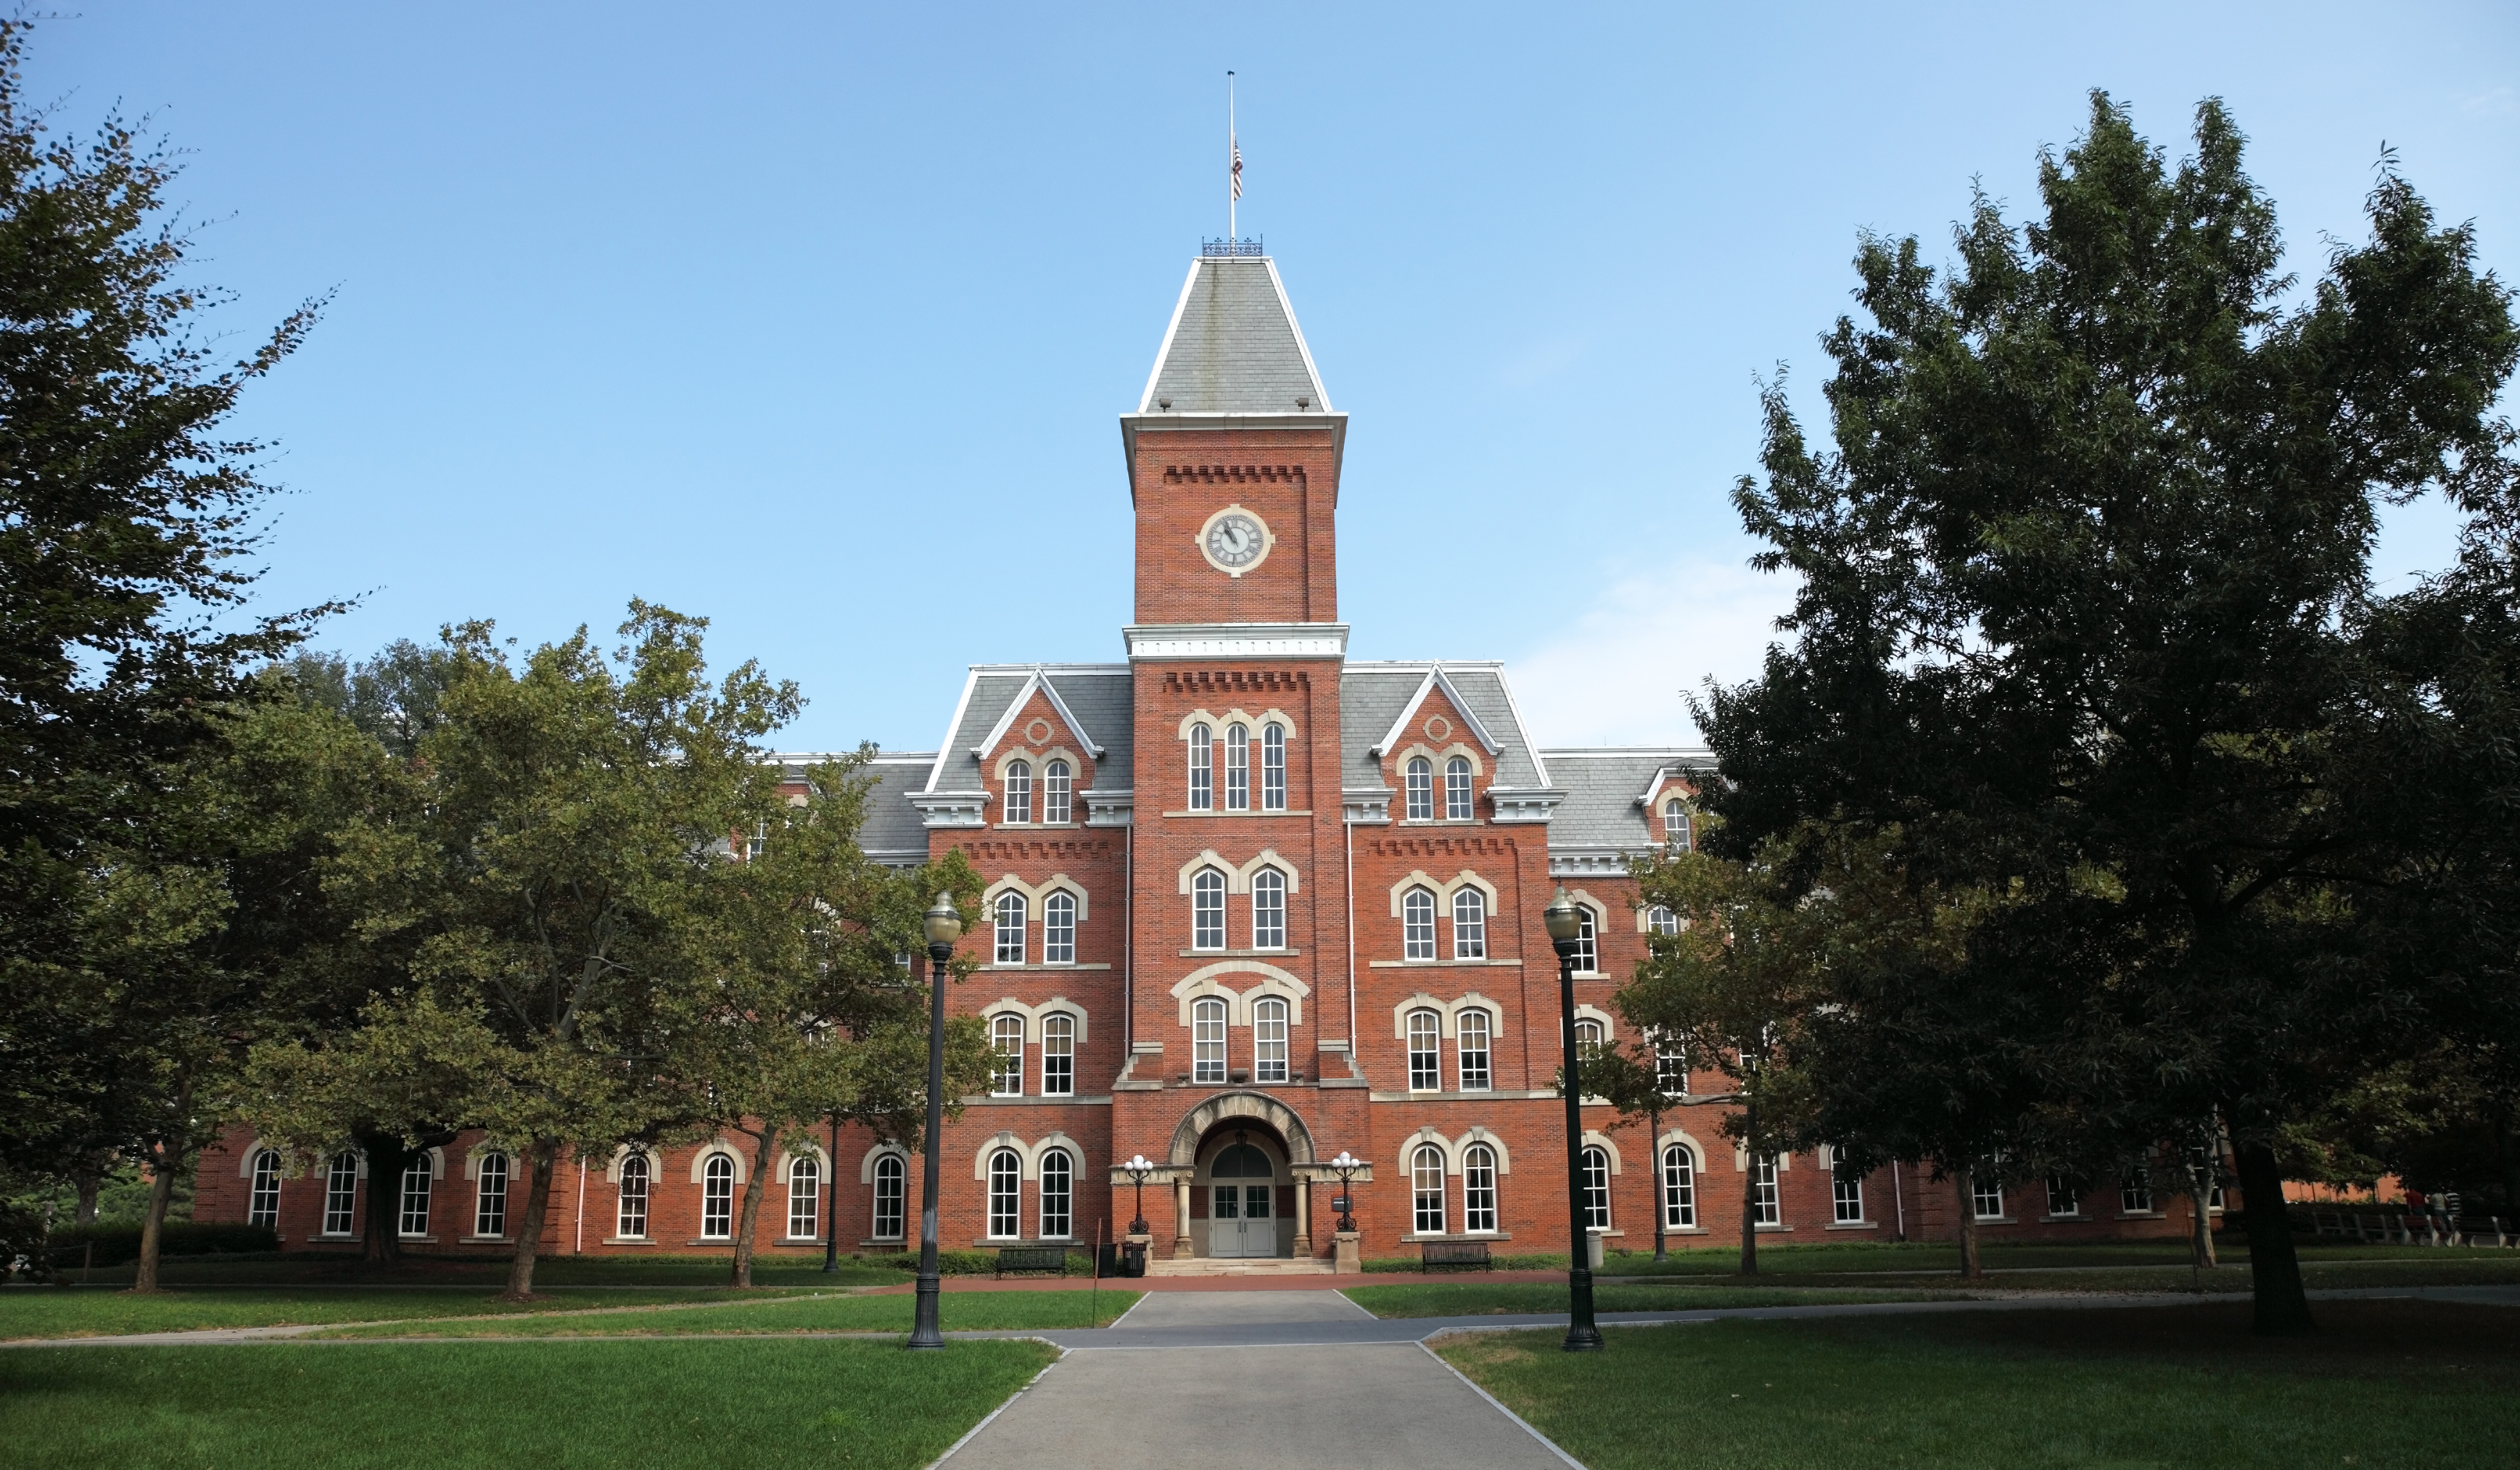 A brick building on the Ohio State University campus.